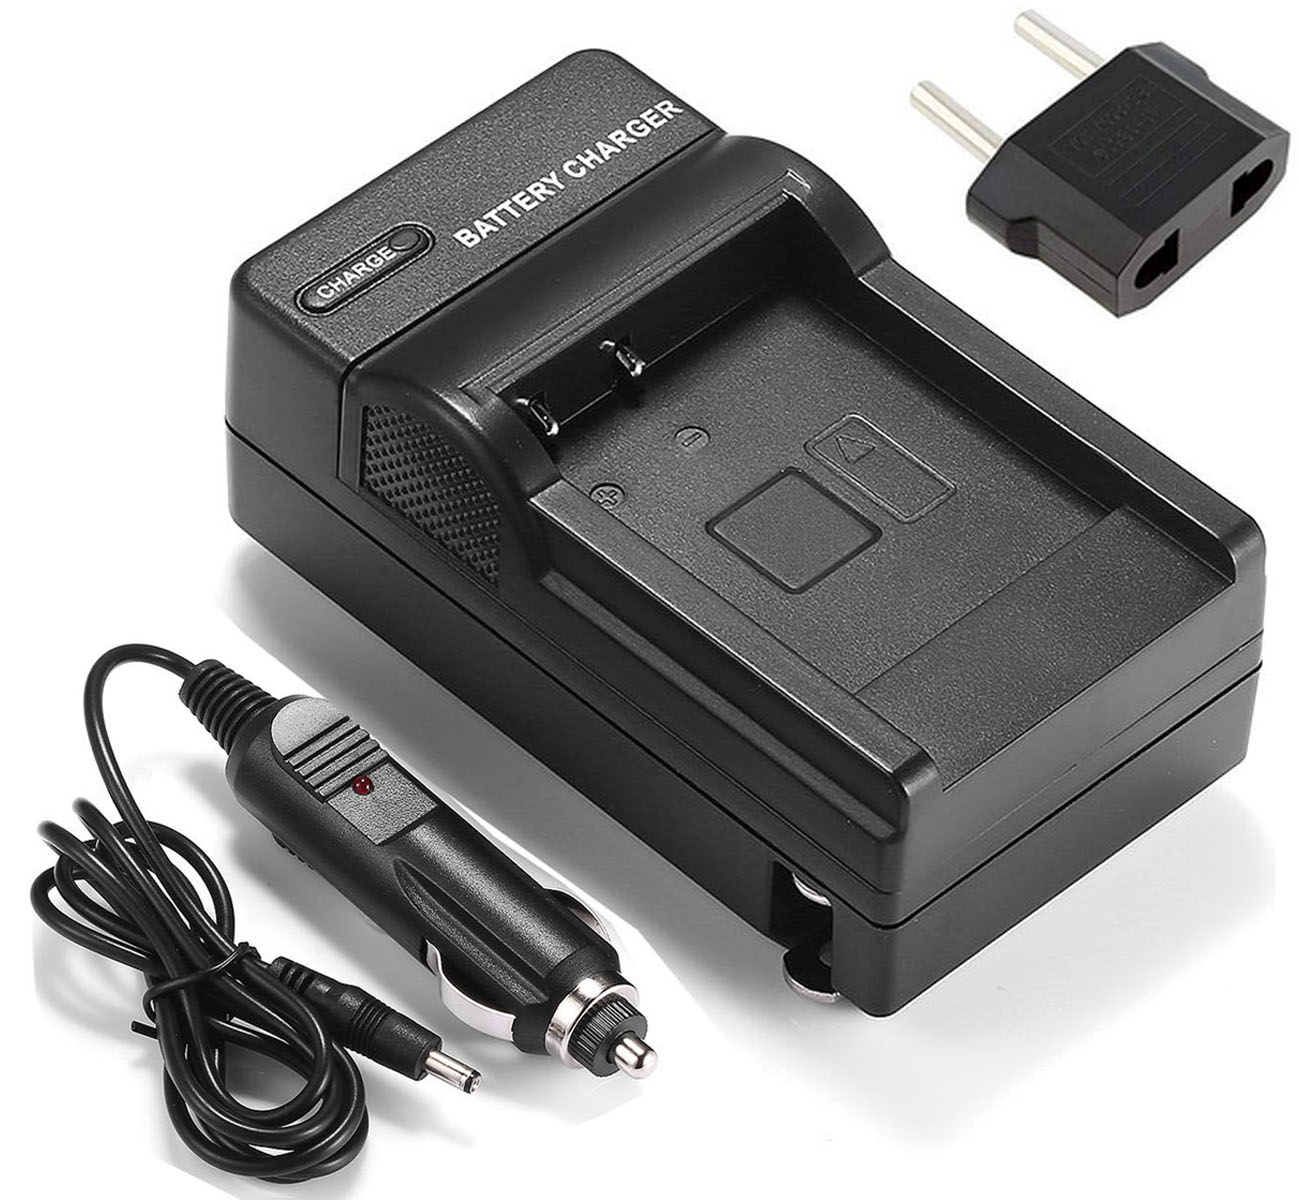 Battery Charger for <font><b>Sony</b></font> <font><b>Alpha</b></font> ILCE-3000, ILCE-<font><b>3500</b></font>, ILCE-5000,ILCE-5100,ILCE-6000,ILCE-6300,ILCE-6500 Mirrorless Digital Camera image